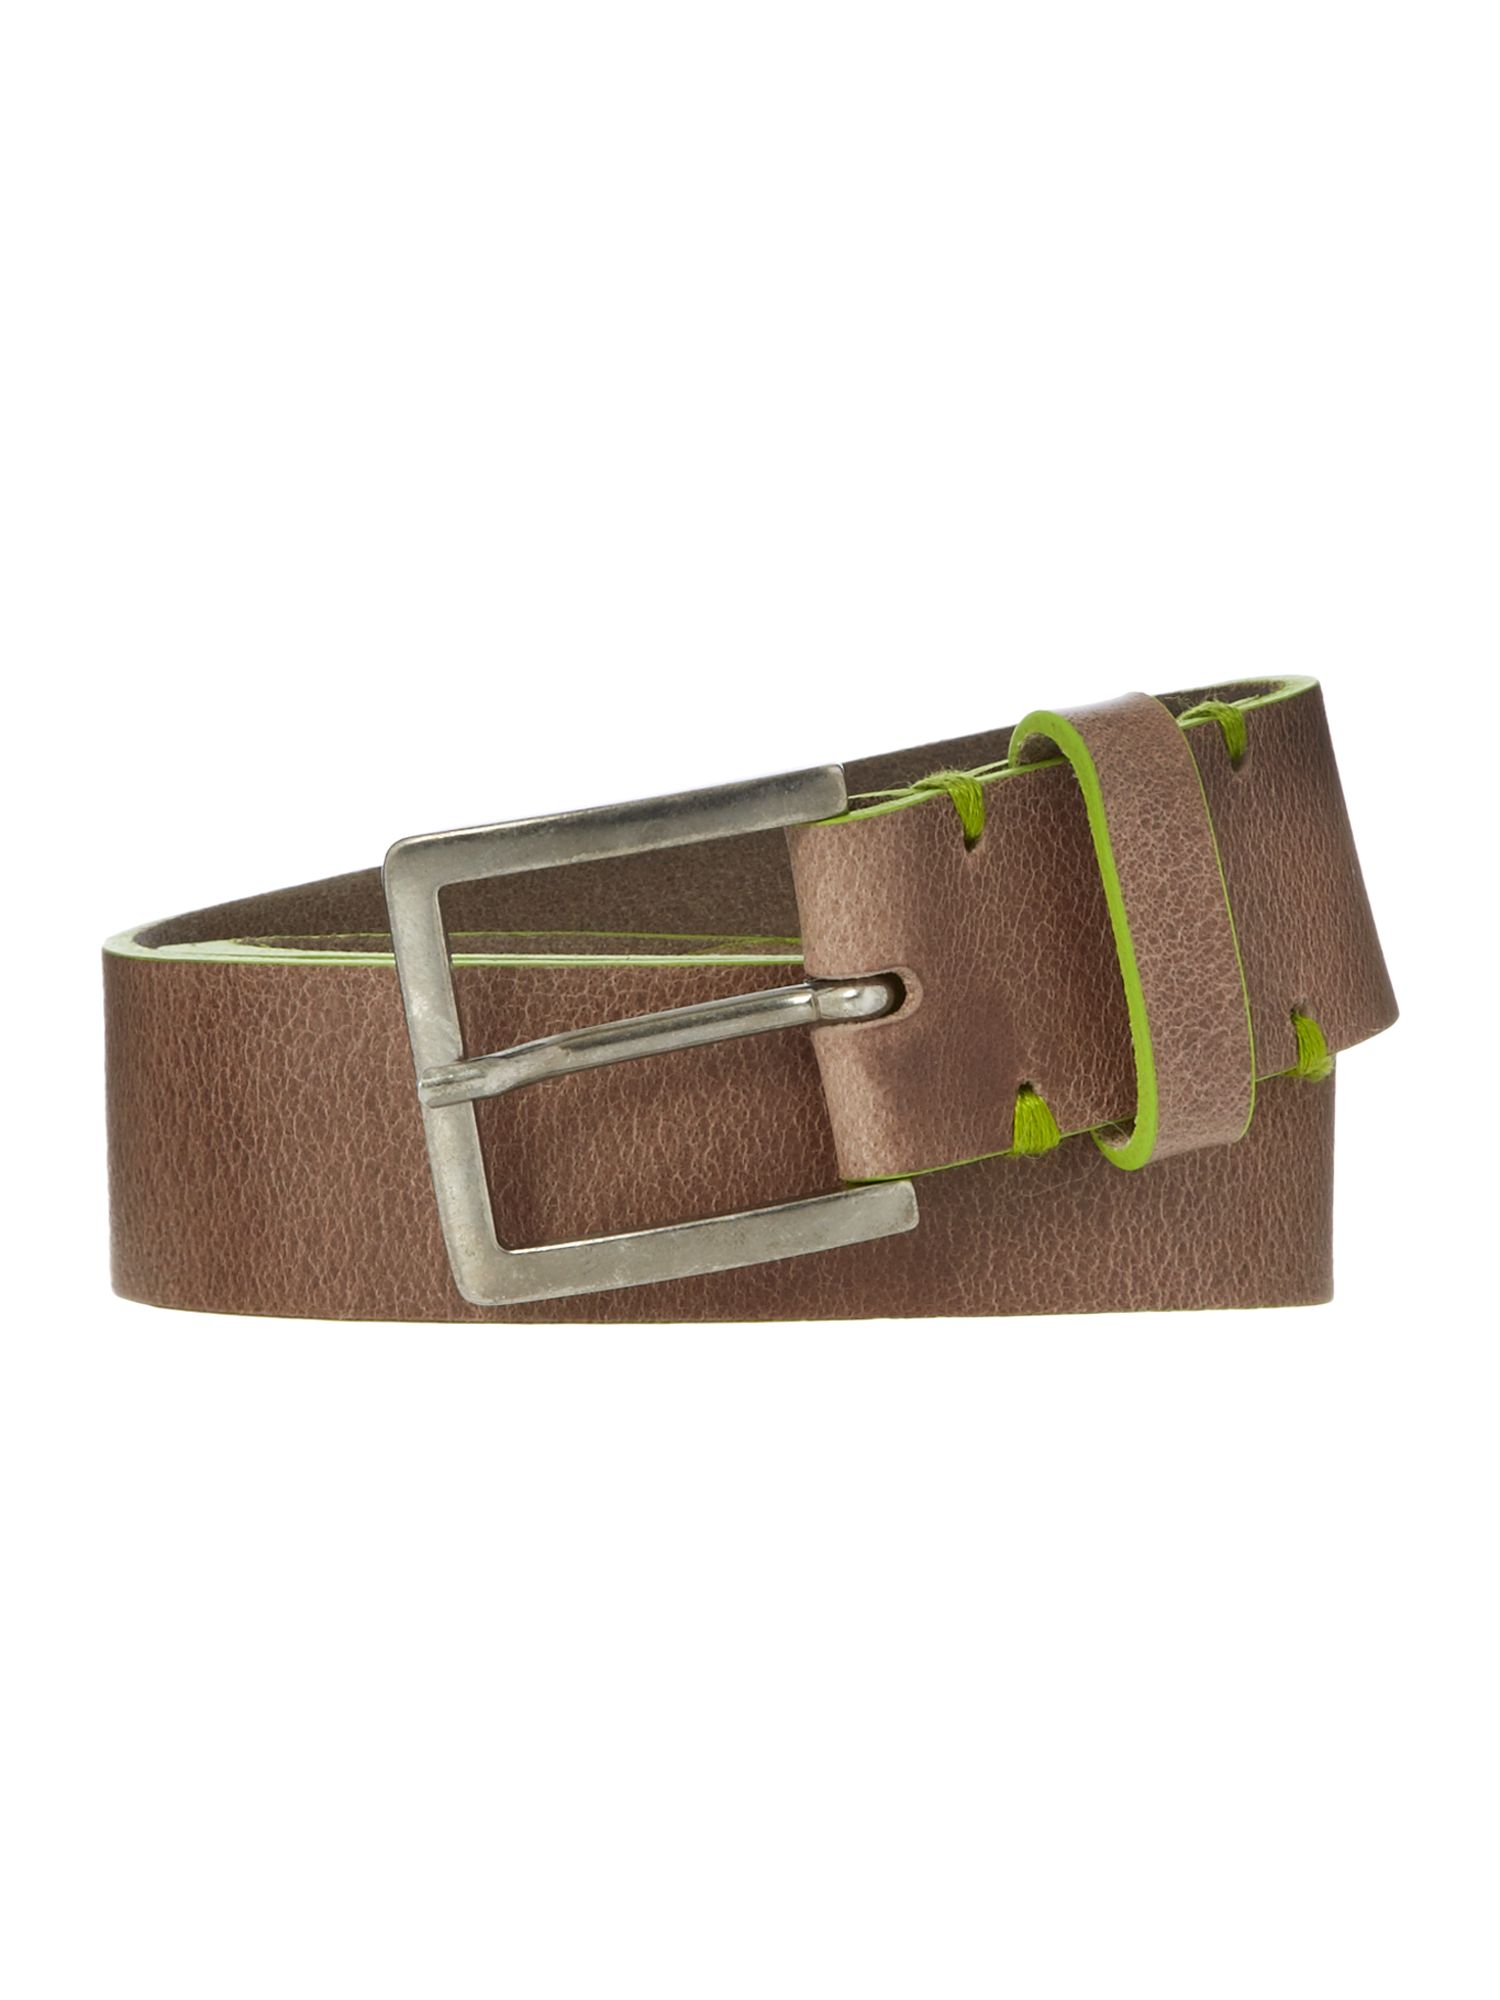 Soft leather lime edge belt